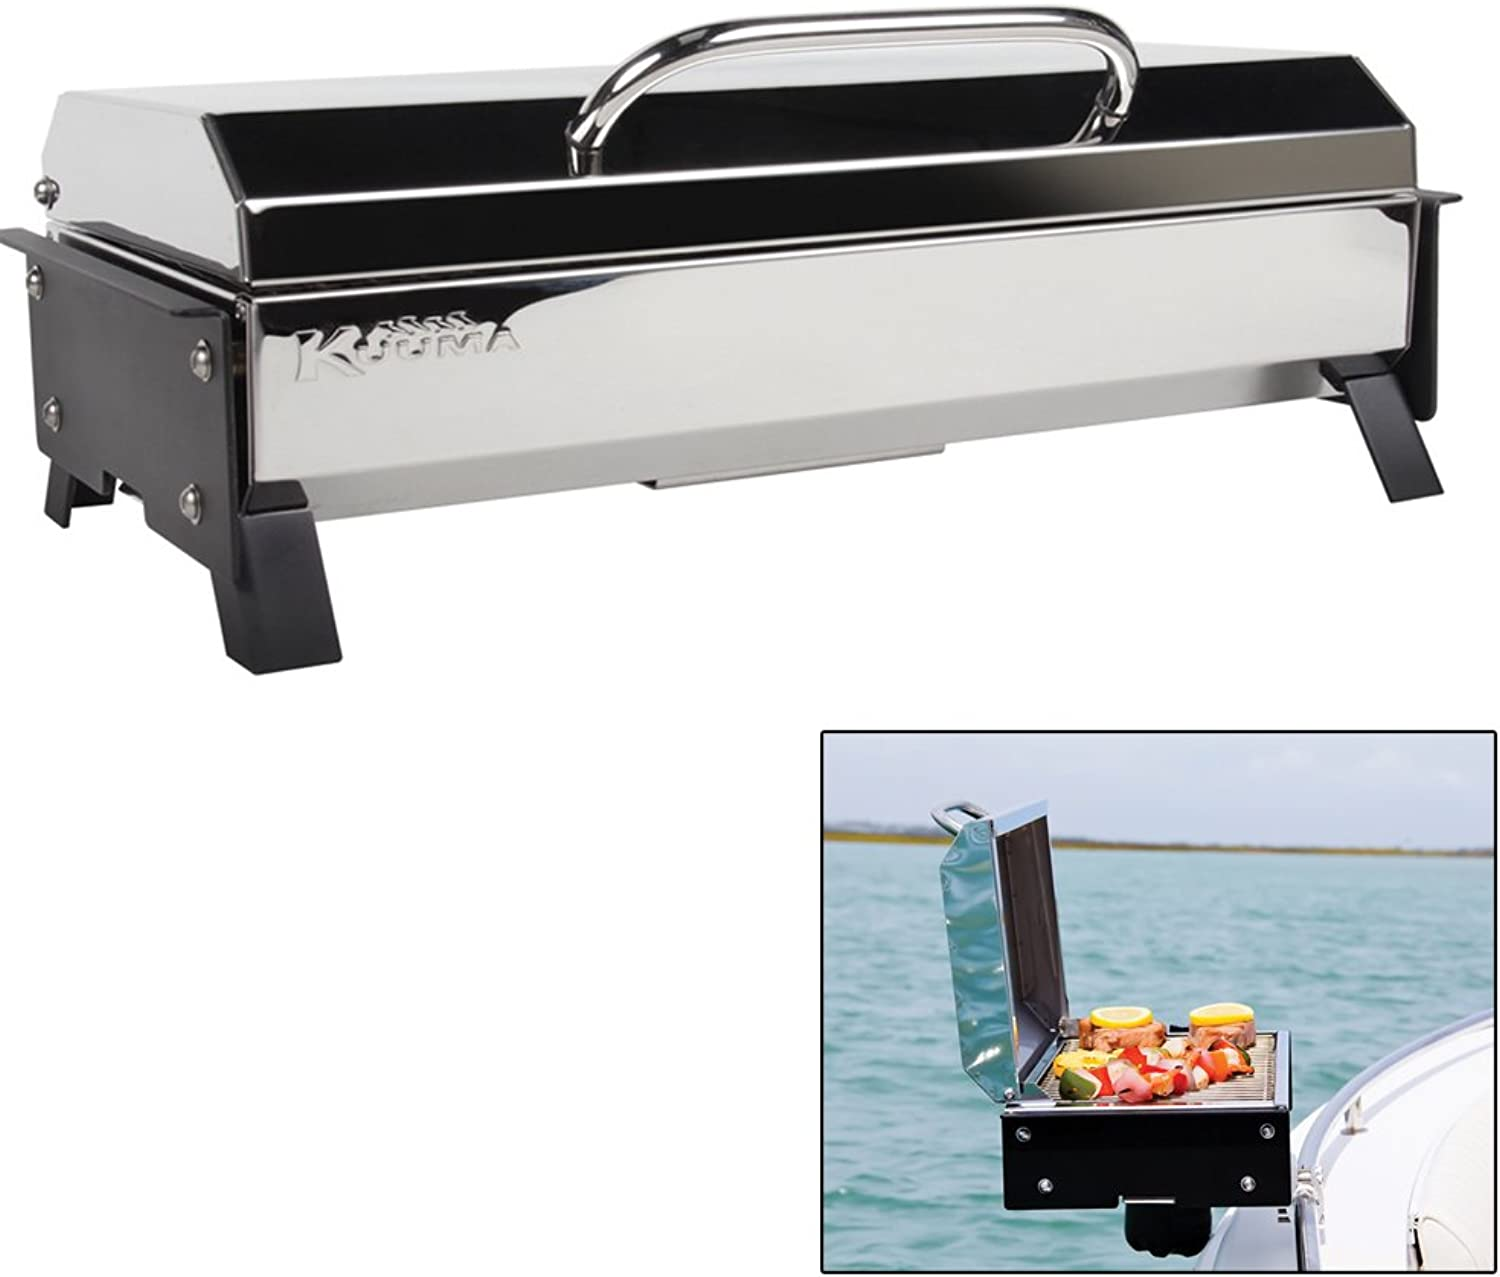 Kuuma Profile 150 Gas Grill9,000BTU w Regulator